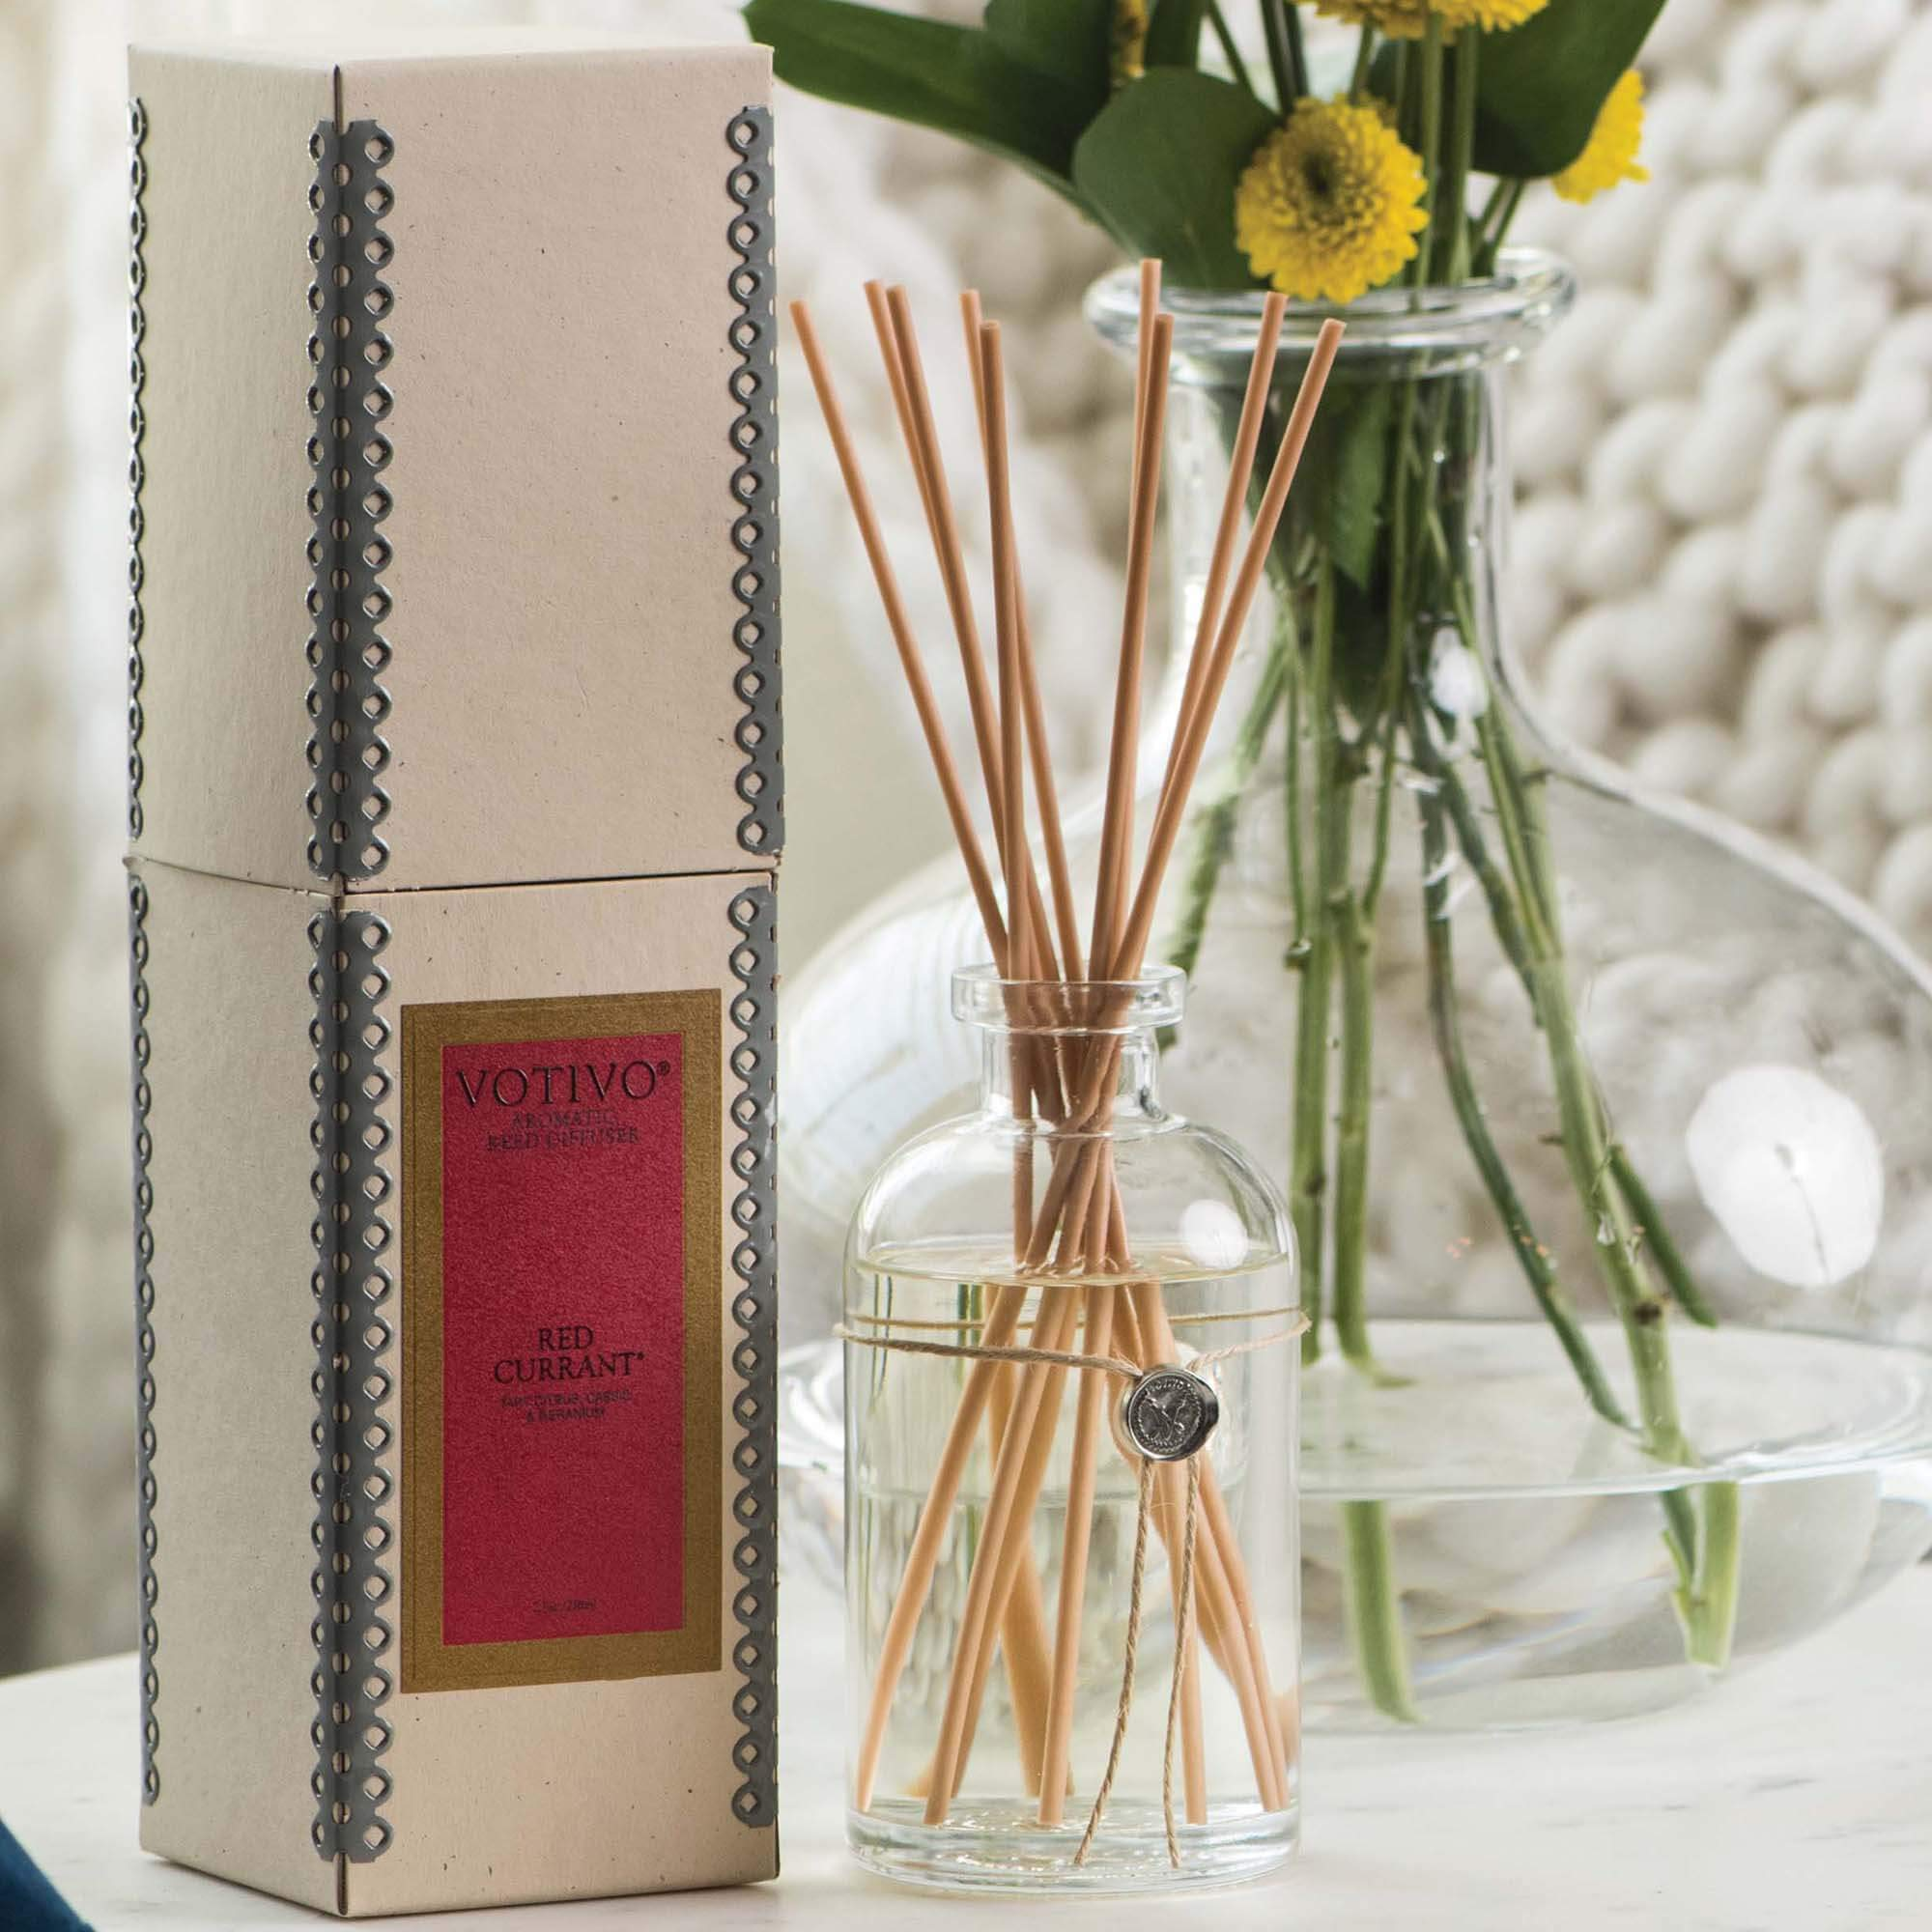 Votivo Aromatic Reed Diffuser - Red Currant by Votivo (Image #5)